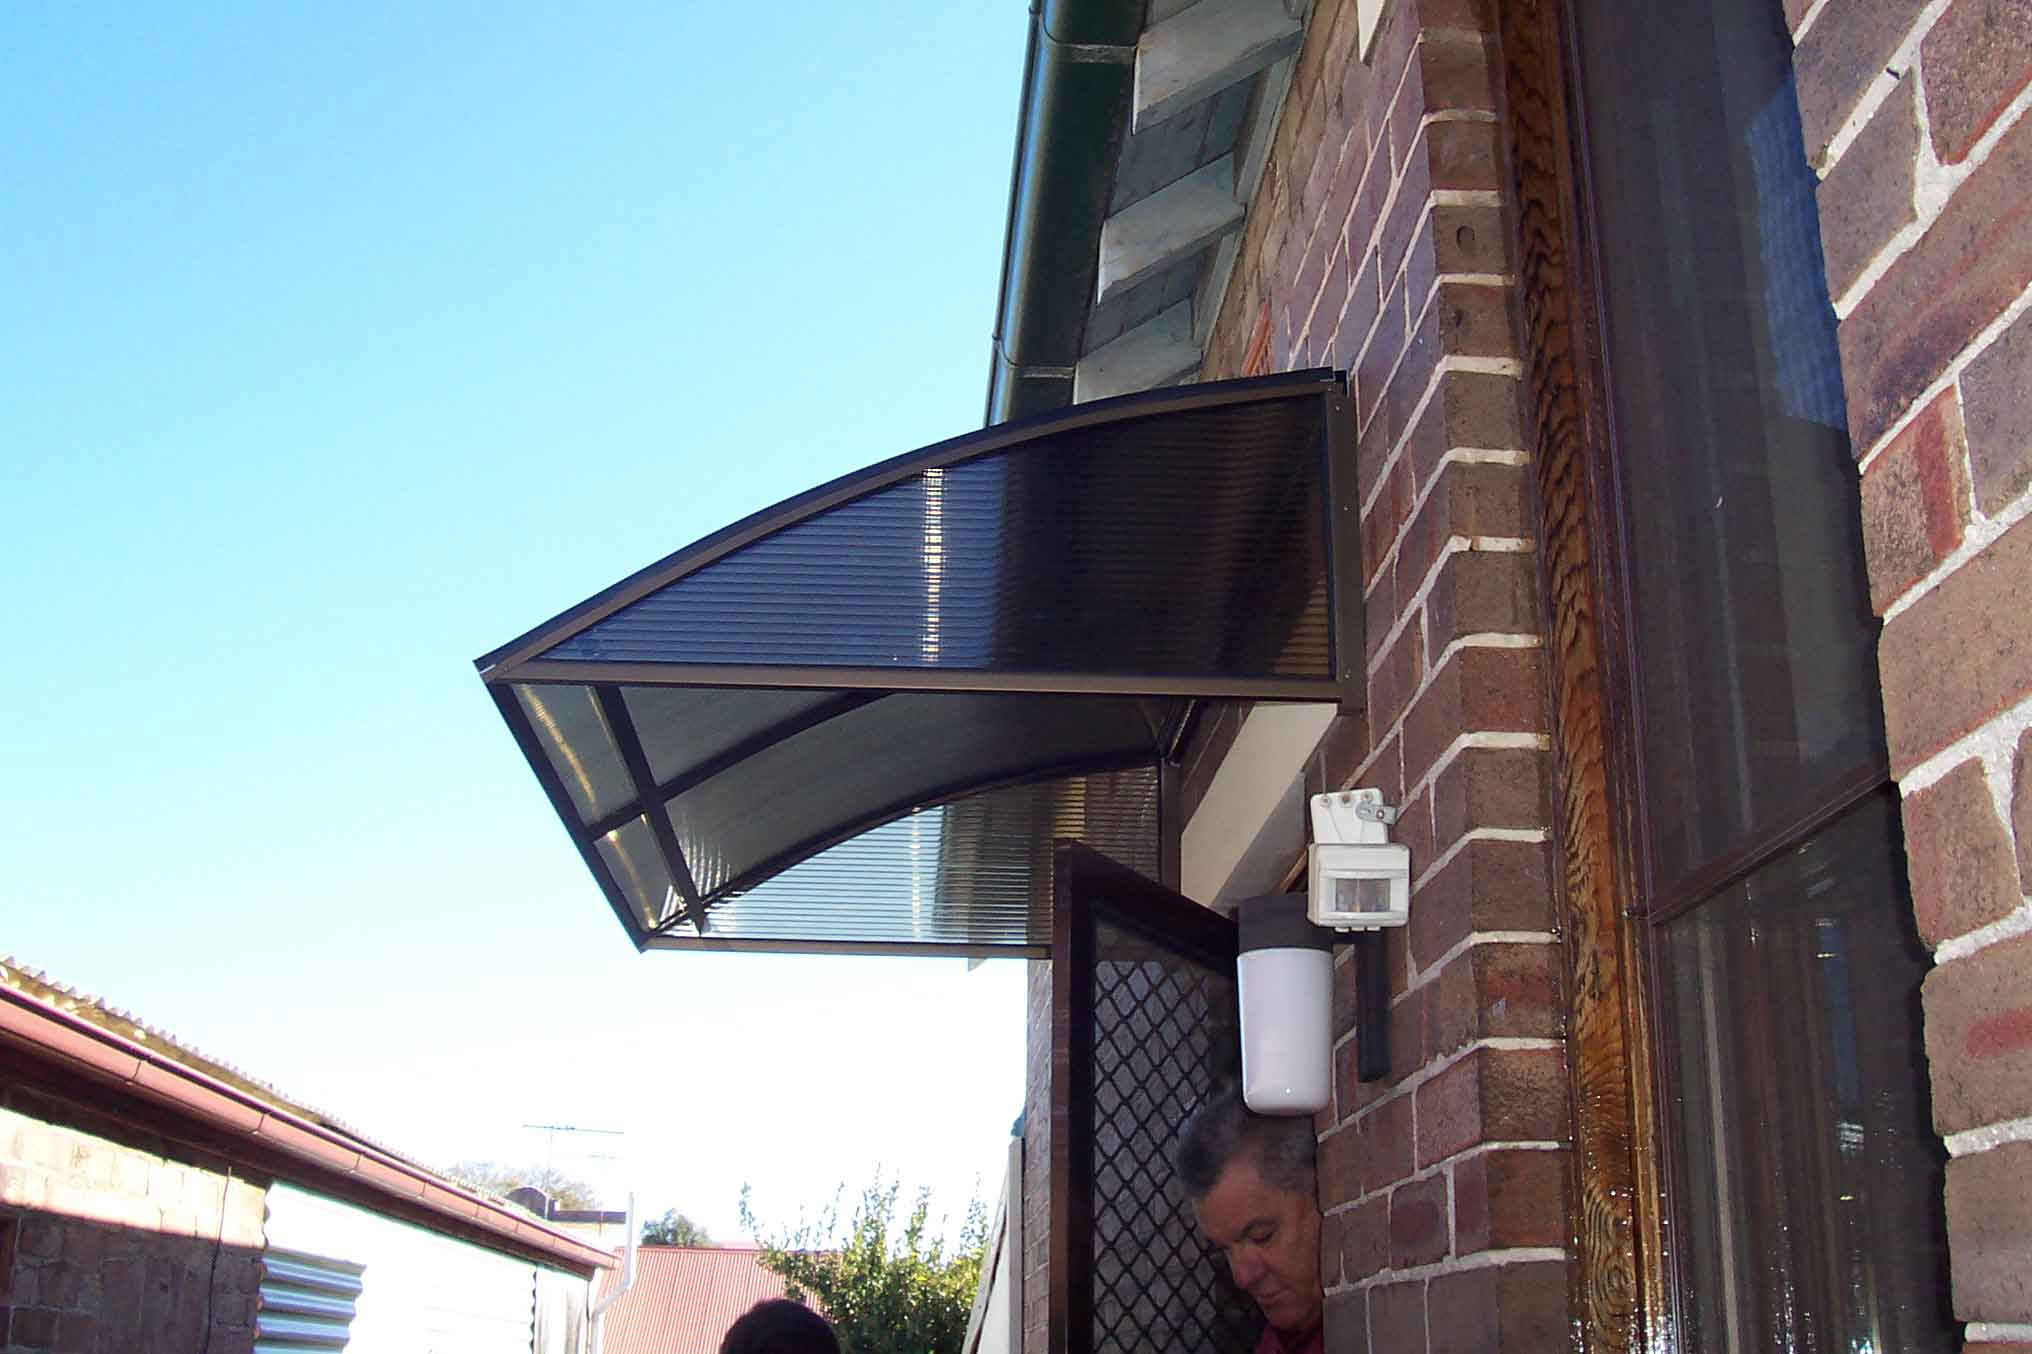 domas-window-awnings-sydney.jpg